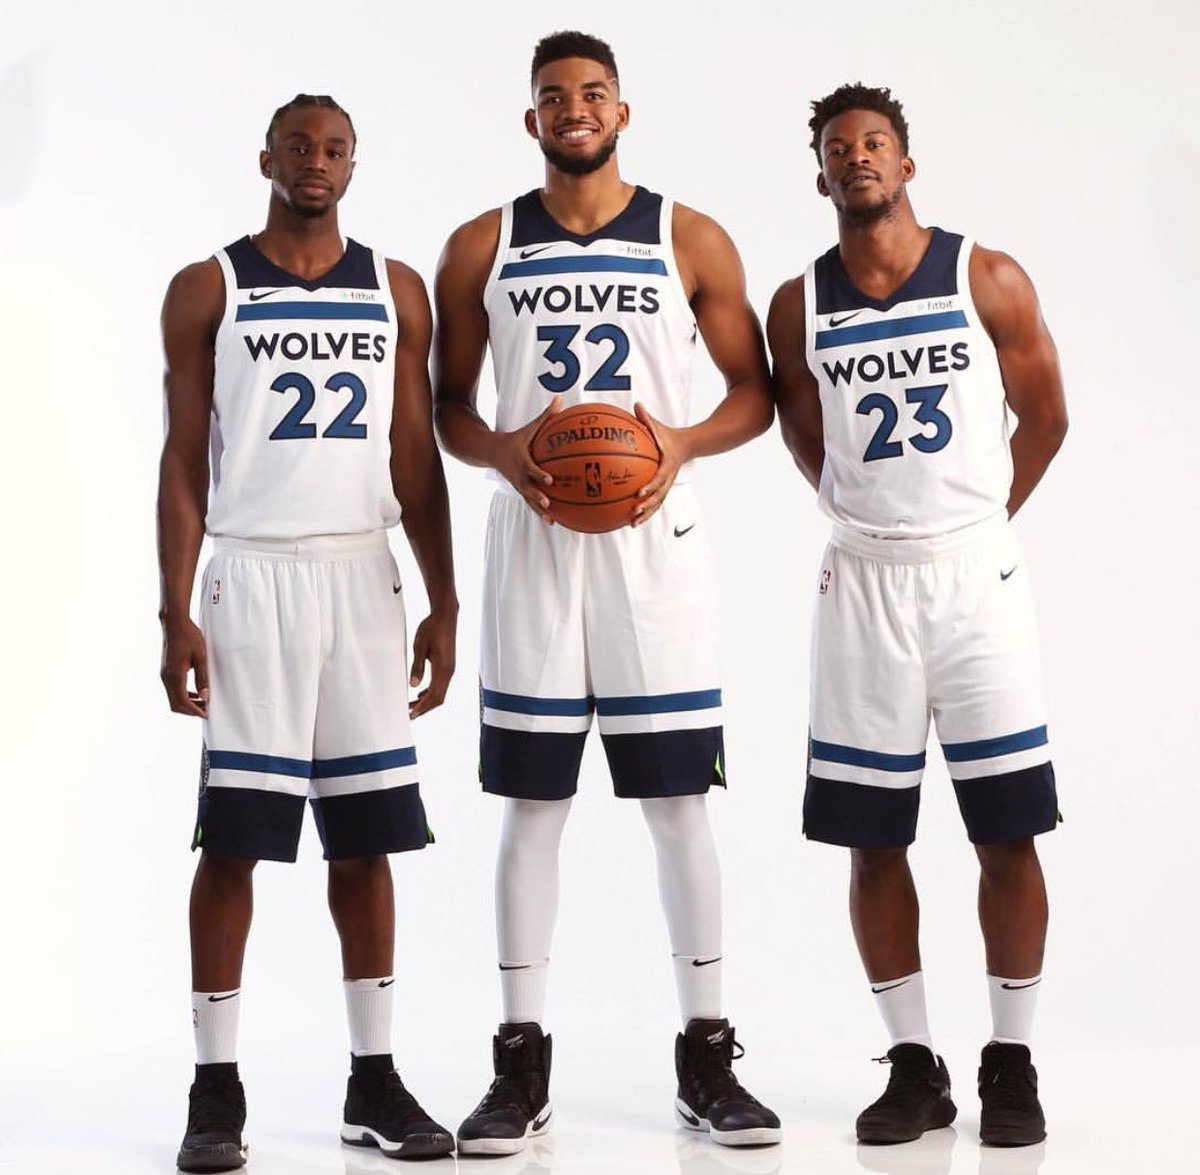 The new generation T-Wolves #Minn finest #Wolfpack #NBA @JimmyButler @KarlTowns @22wiggins new look new season. #RankUpSports<br>http://pic.twitter.com/3h5Y37Fnxi